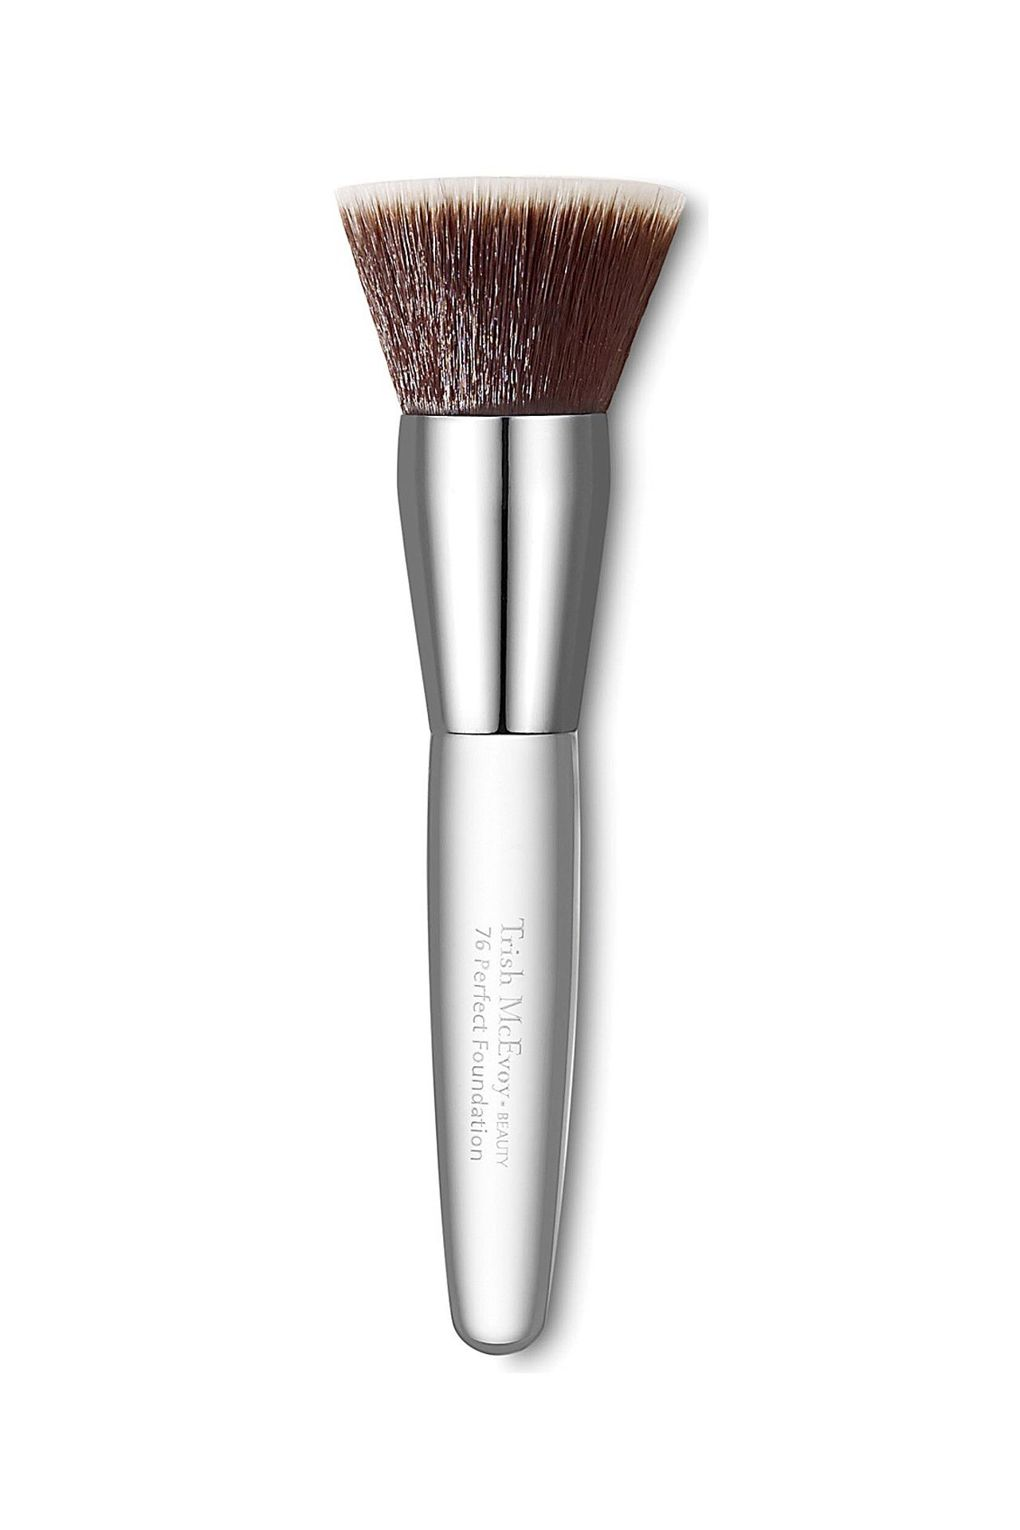 10 Best Make Up Brushes You Should Add To Your Collection